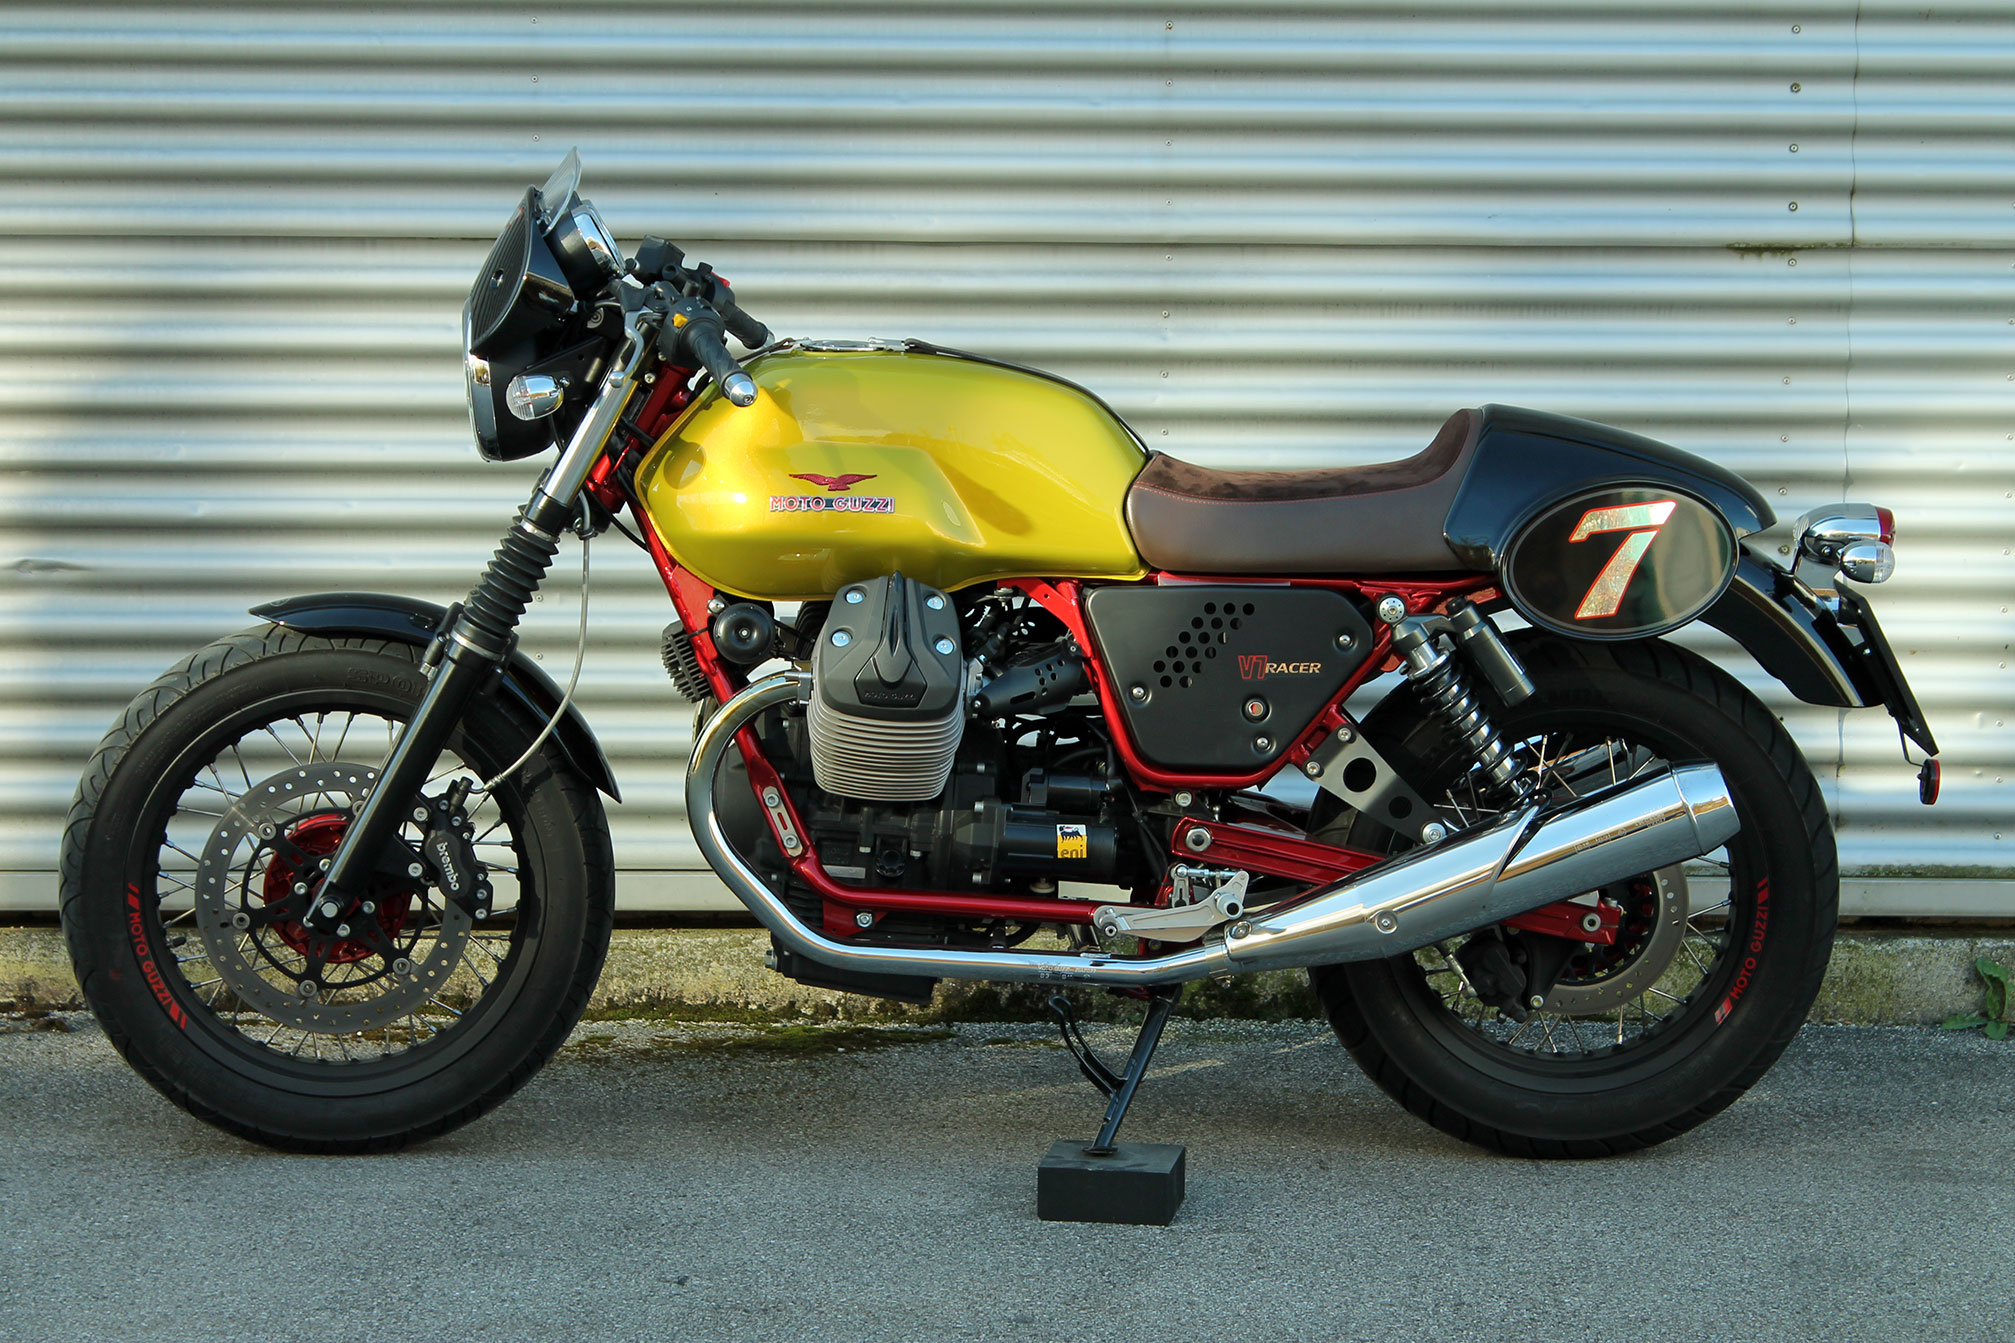 Moto Guzzi V7 Racer Limited Edition 2011 images #109575